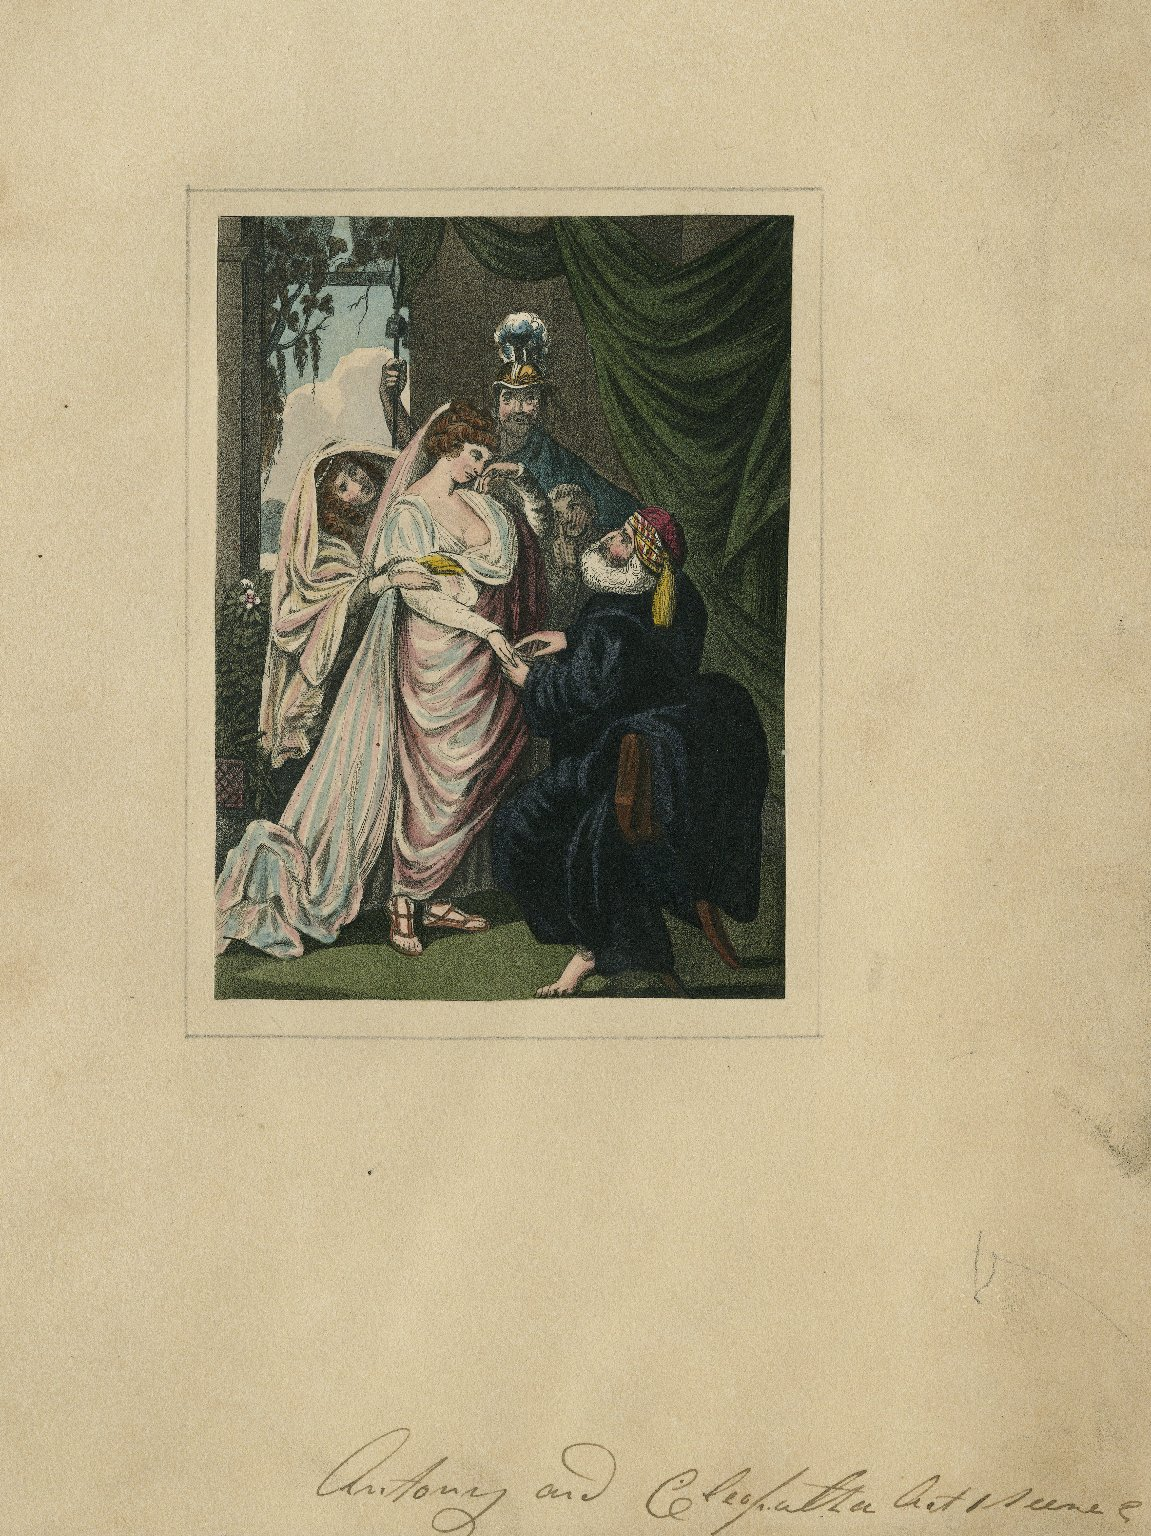 [Anthony and Cleopatra, act 1, scene 2] [graphic] / [Matthew William Peters]